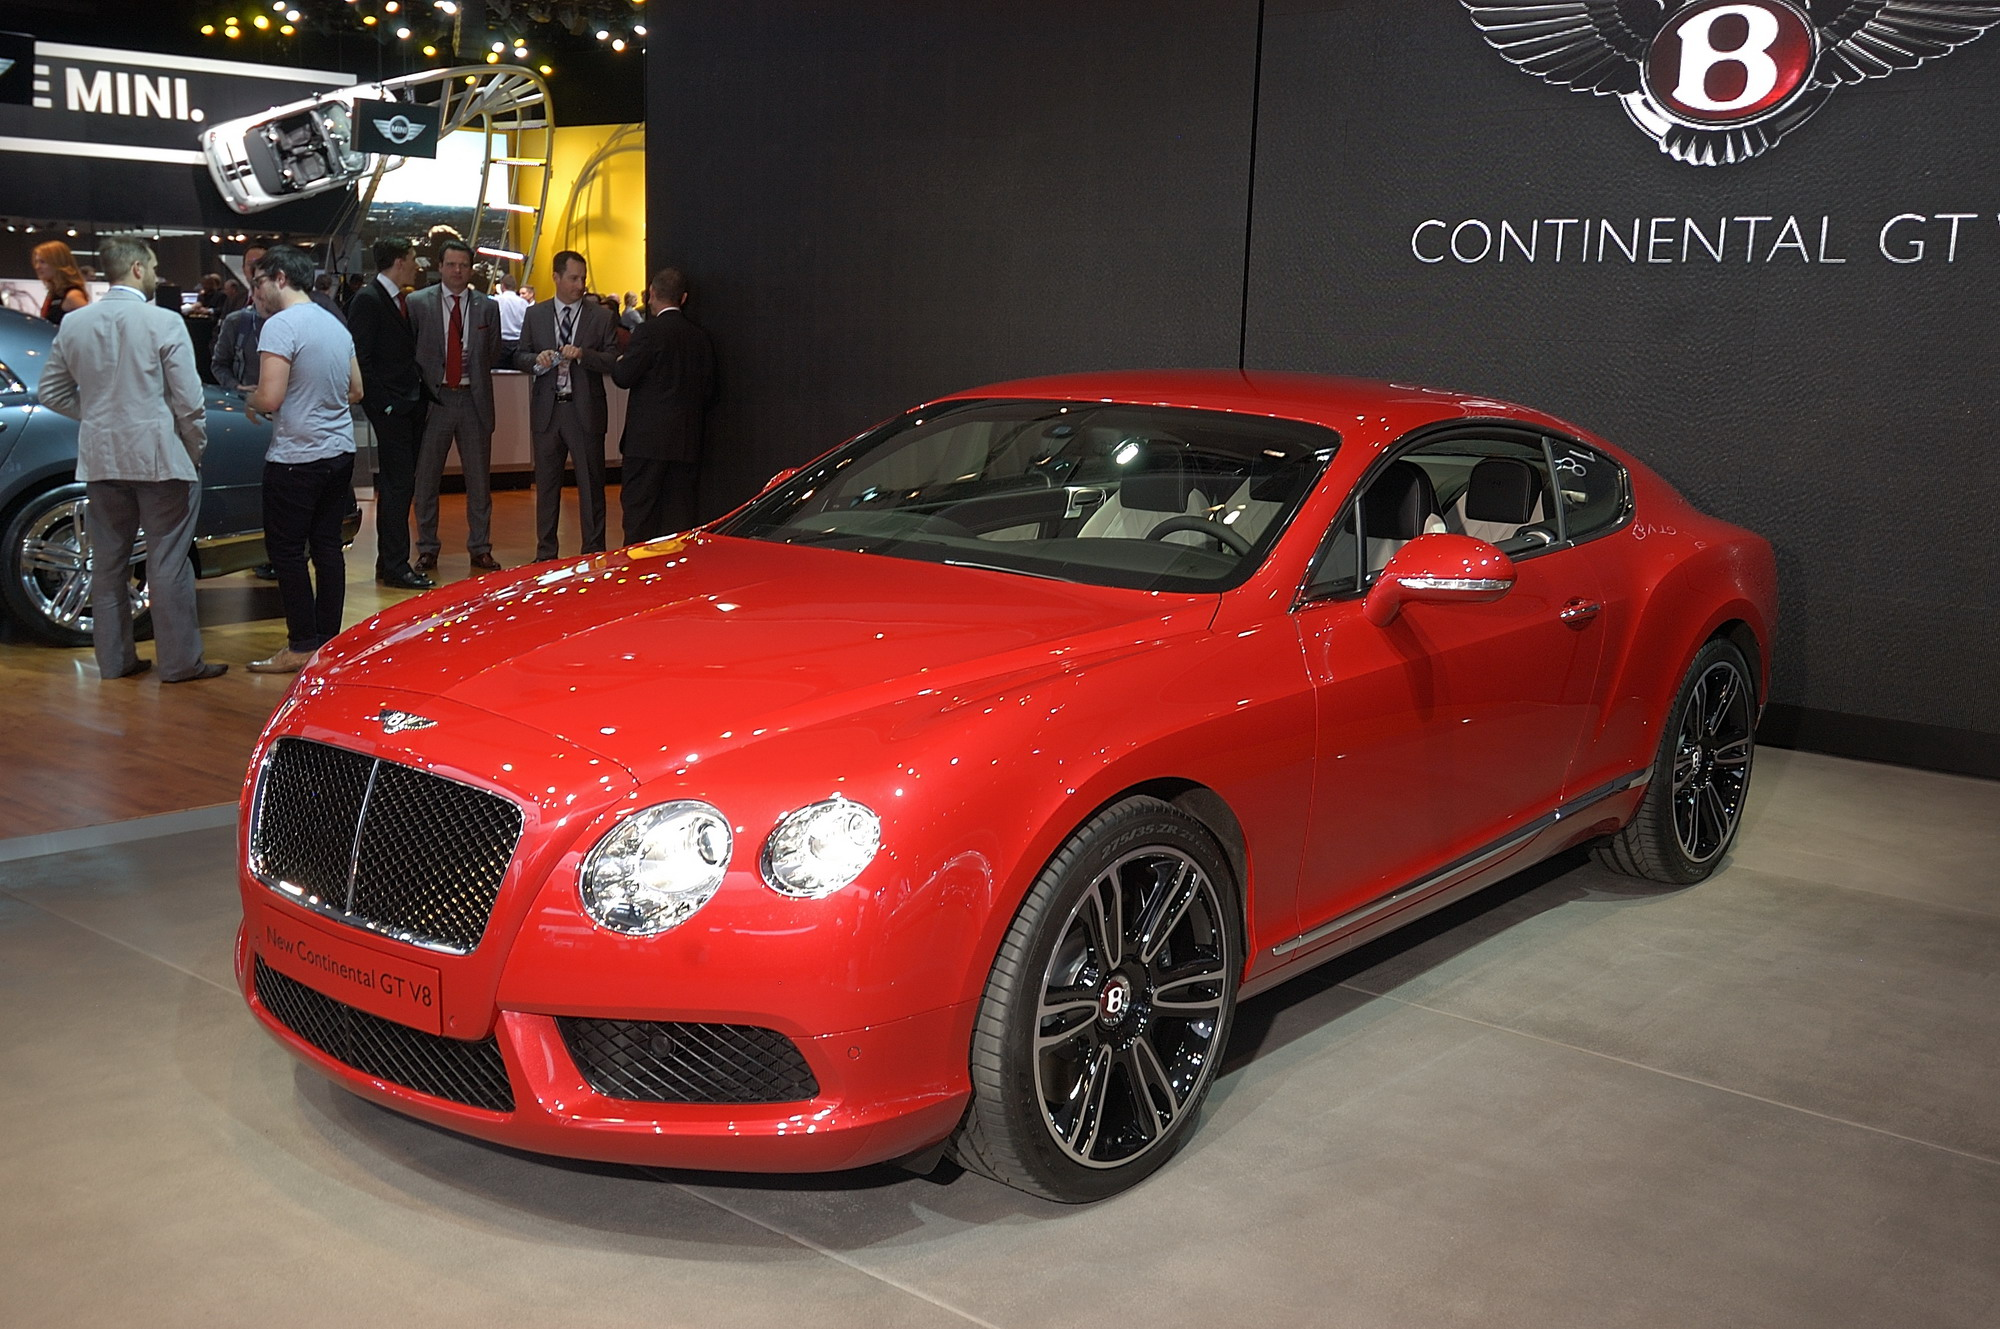 2013 Bentley Continental GT V8 Review - Top Speed